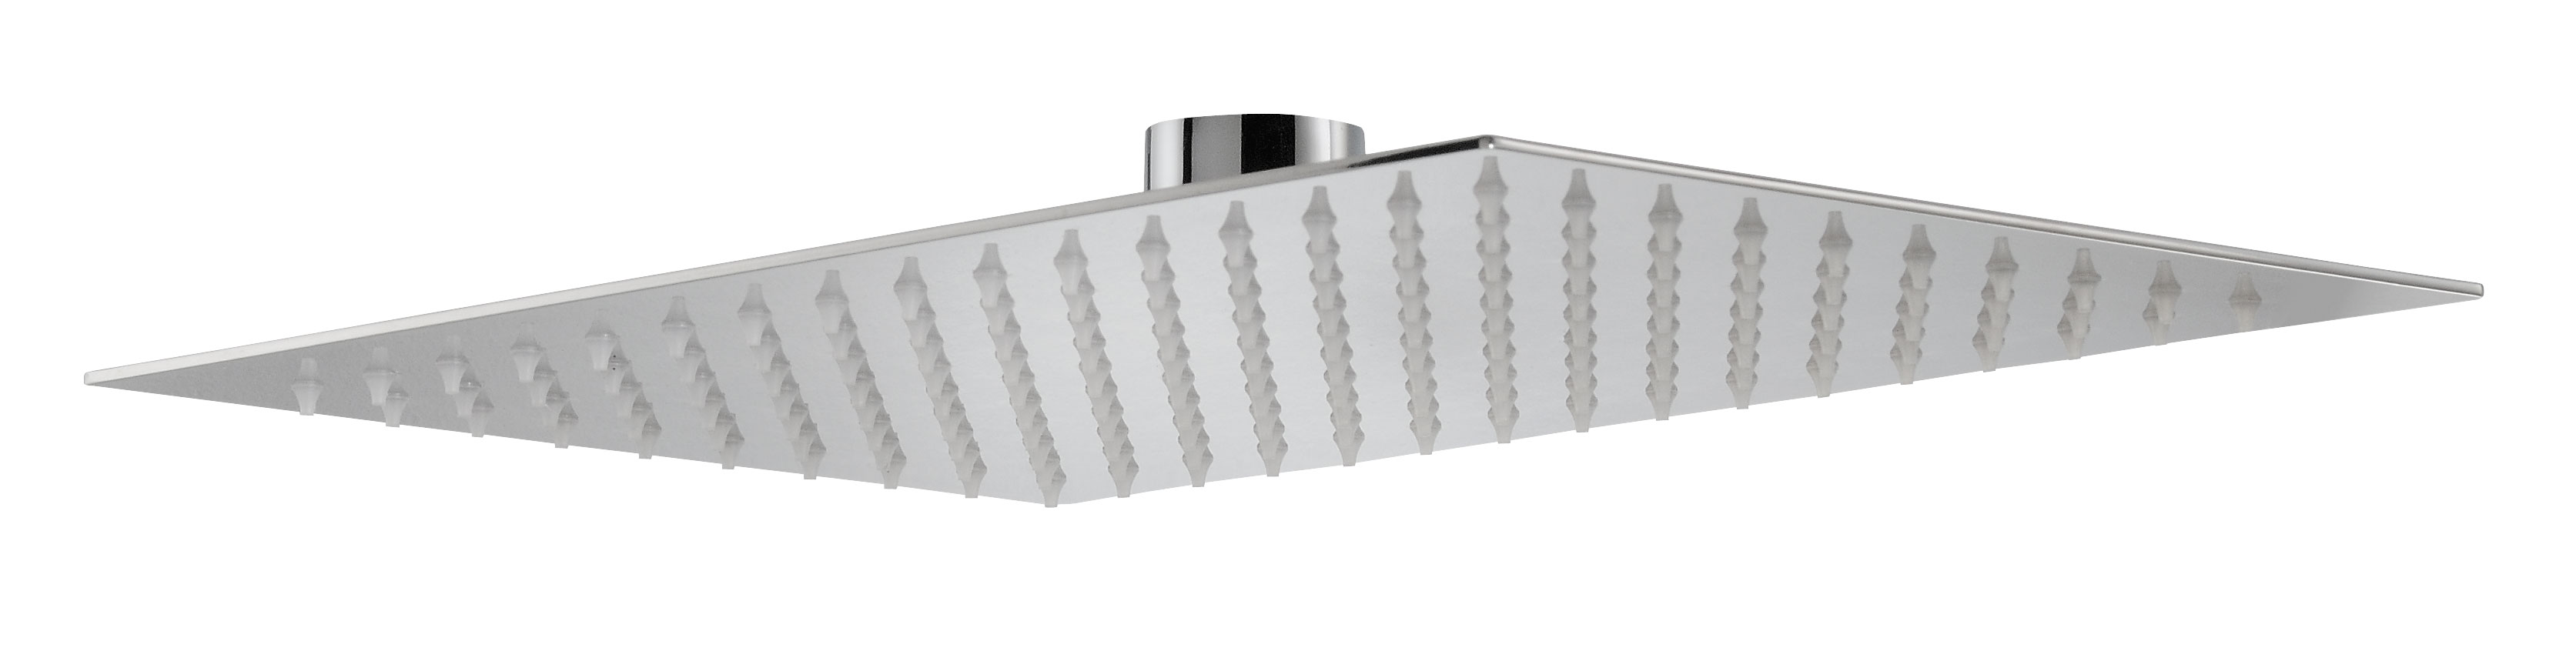 click on Rectangular Showerhead - 340mm x 220mm image to enlarge